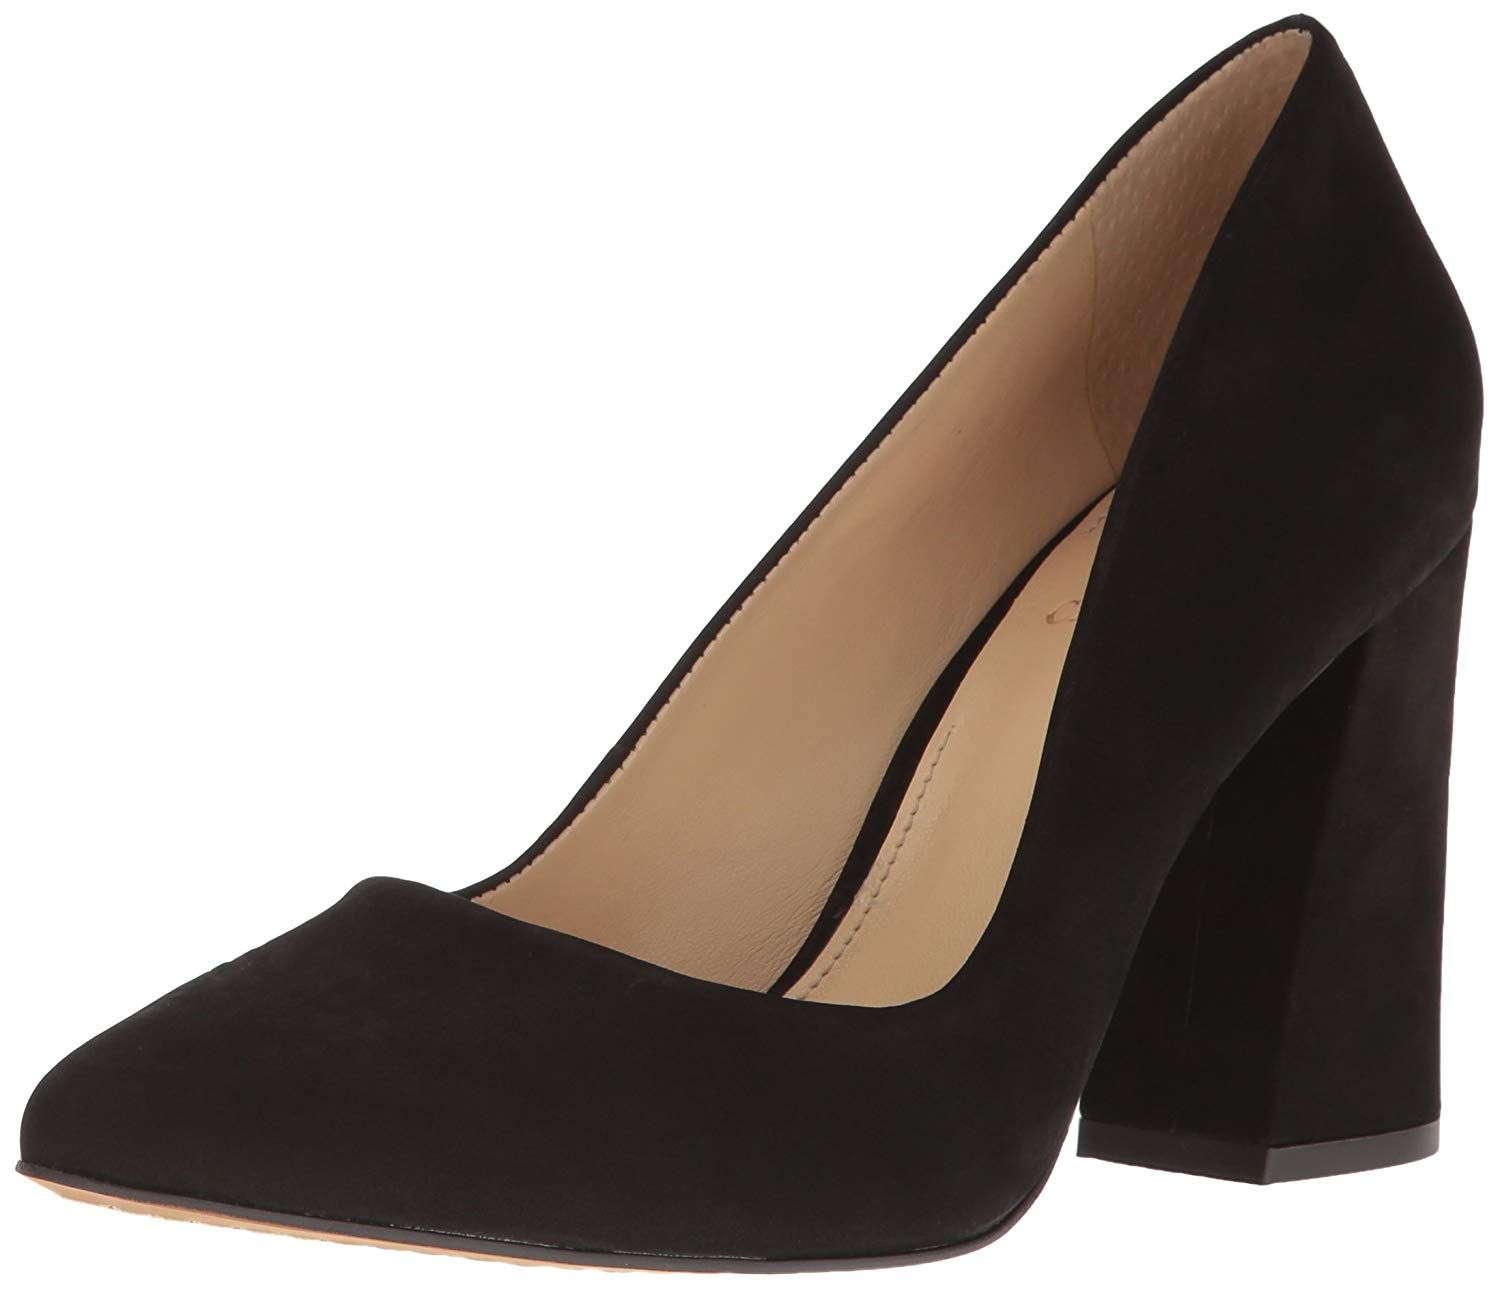 295b6fb51798 Vince Camuto Women s Talise Dress Pump. Pointed toe pump with chunky flared  heel Vince Camuto is a true footwear innovator